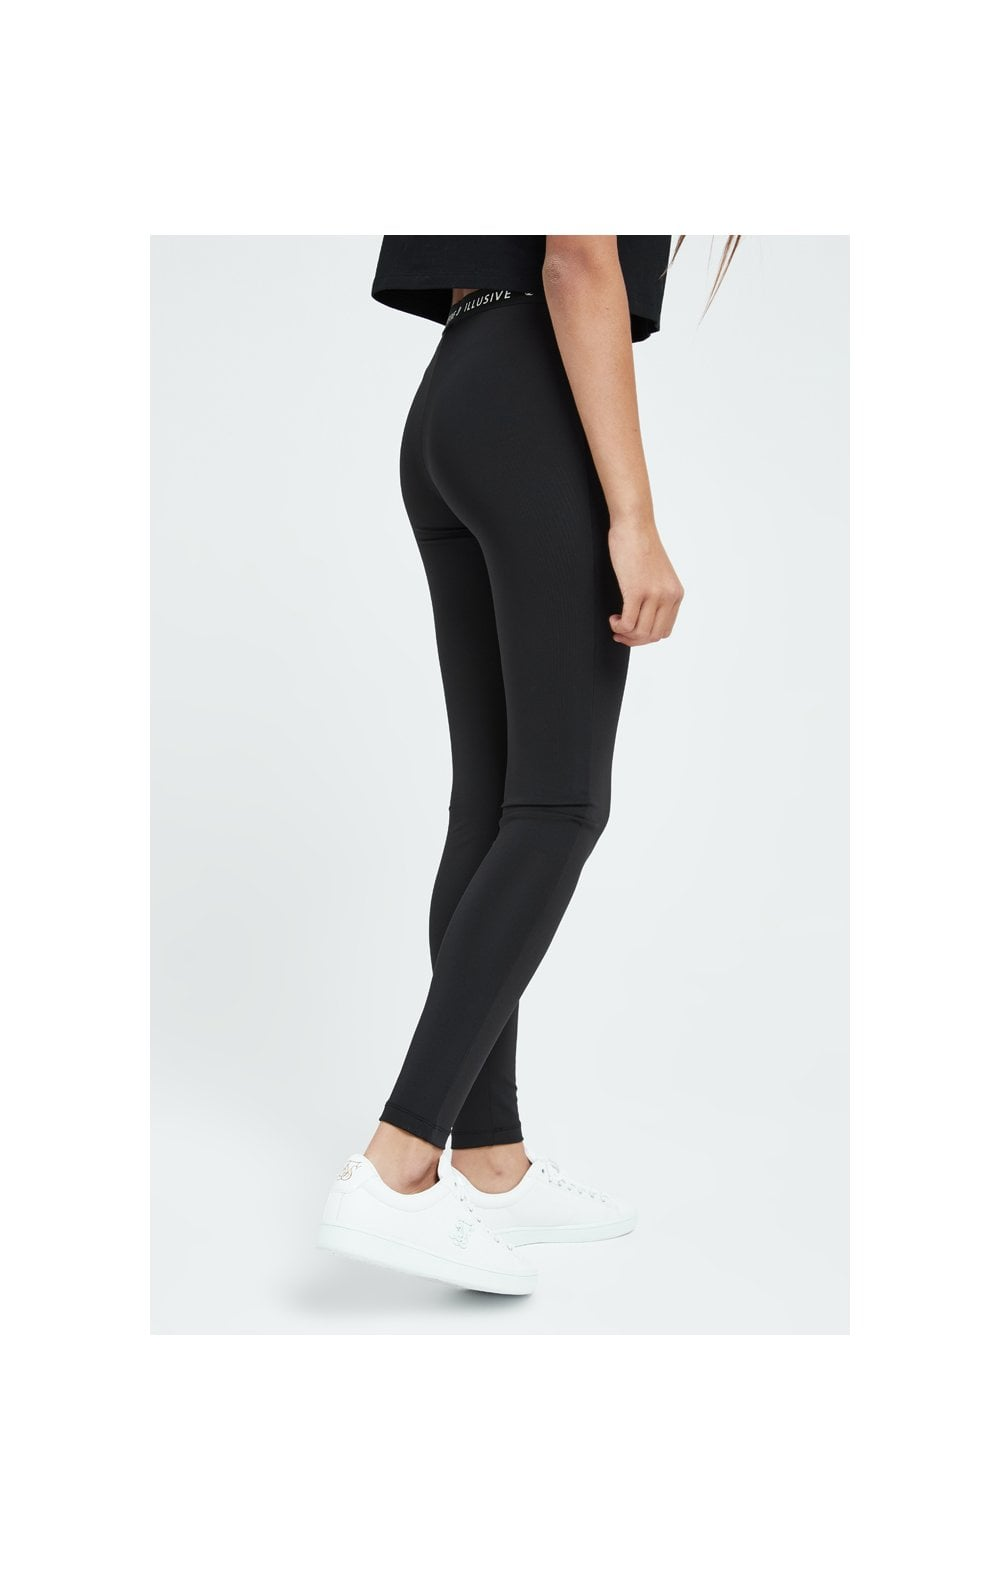 Illusive London Core Leggings - Black (3)